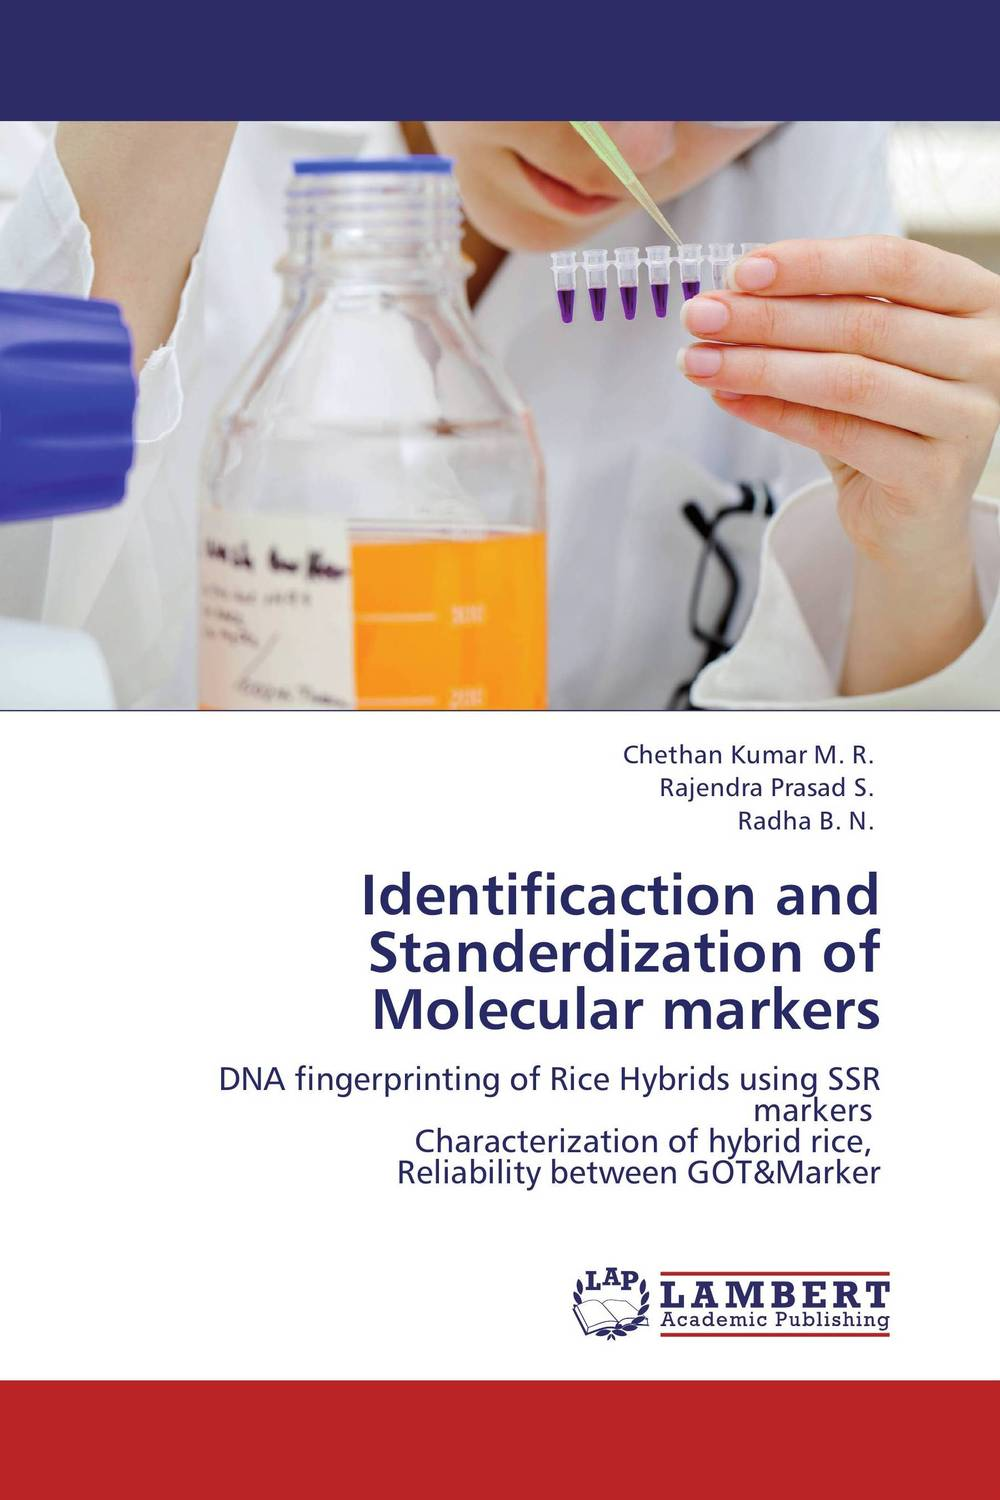 Identificaction and Standerdization of Molecular markers chethan kumar m r rajendra prasad s and radha b n identificaction and standerdization of molecular markers